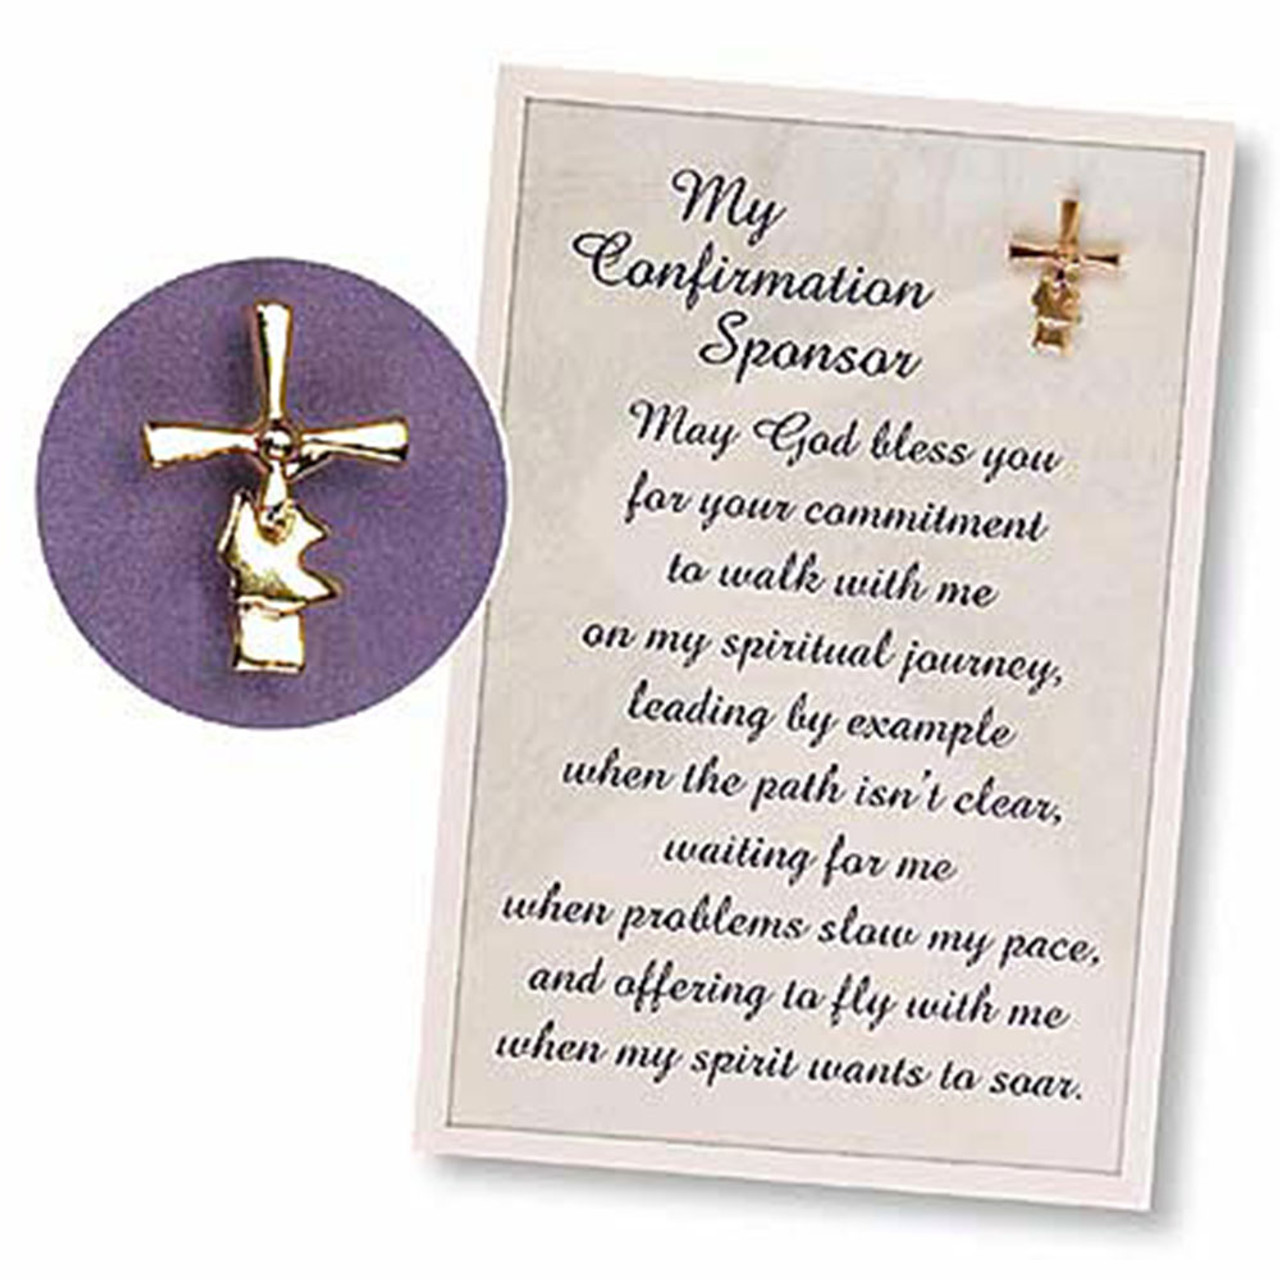 Lapel Pin and Prayer Card for Confirmation Sponsor